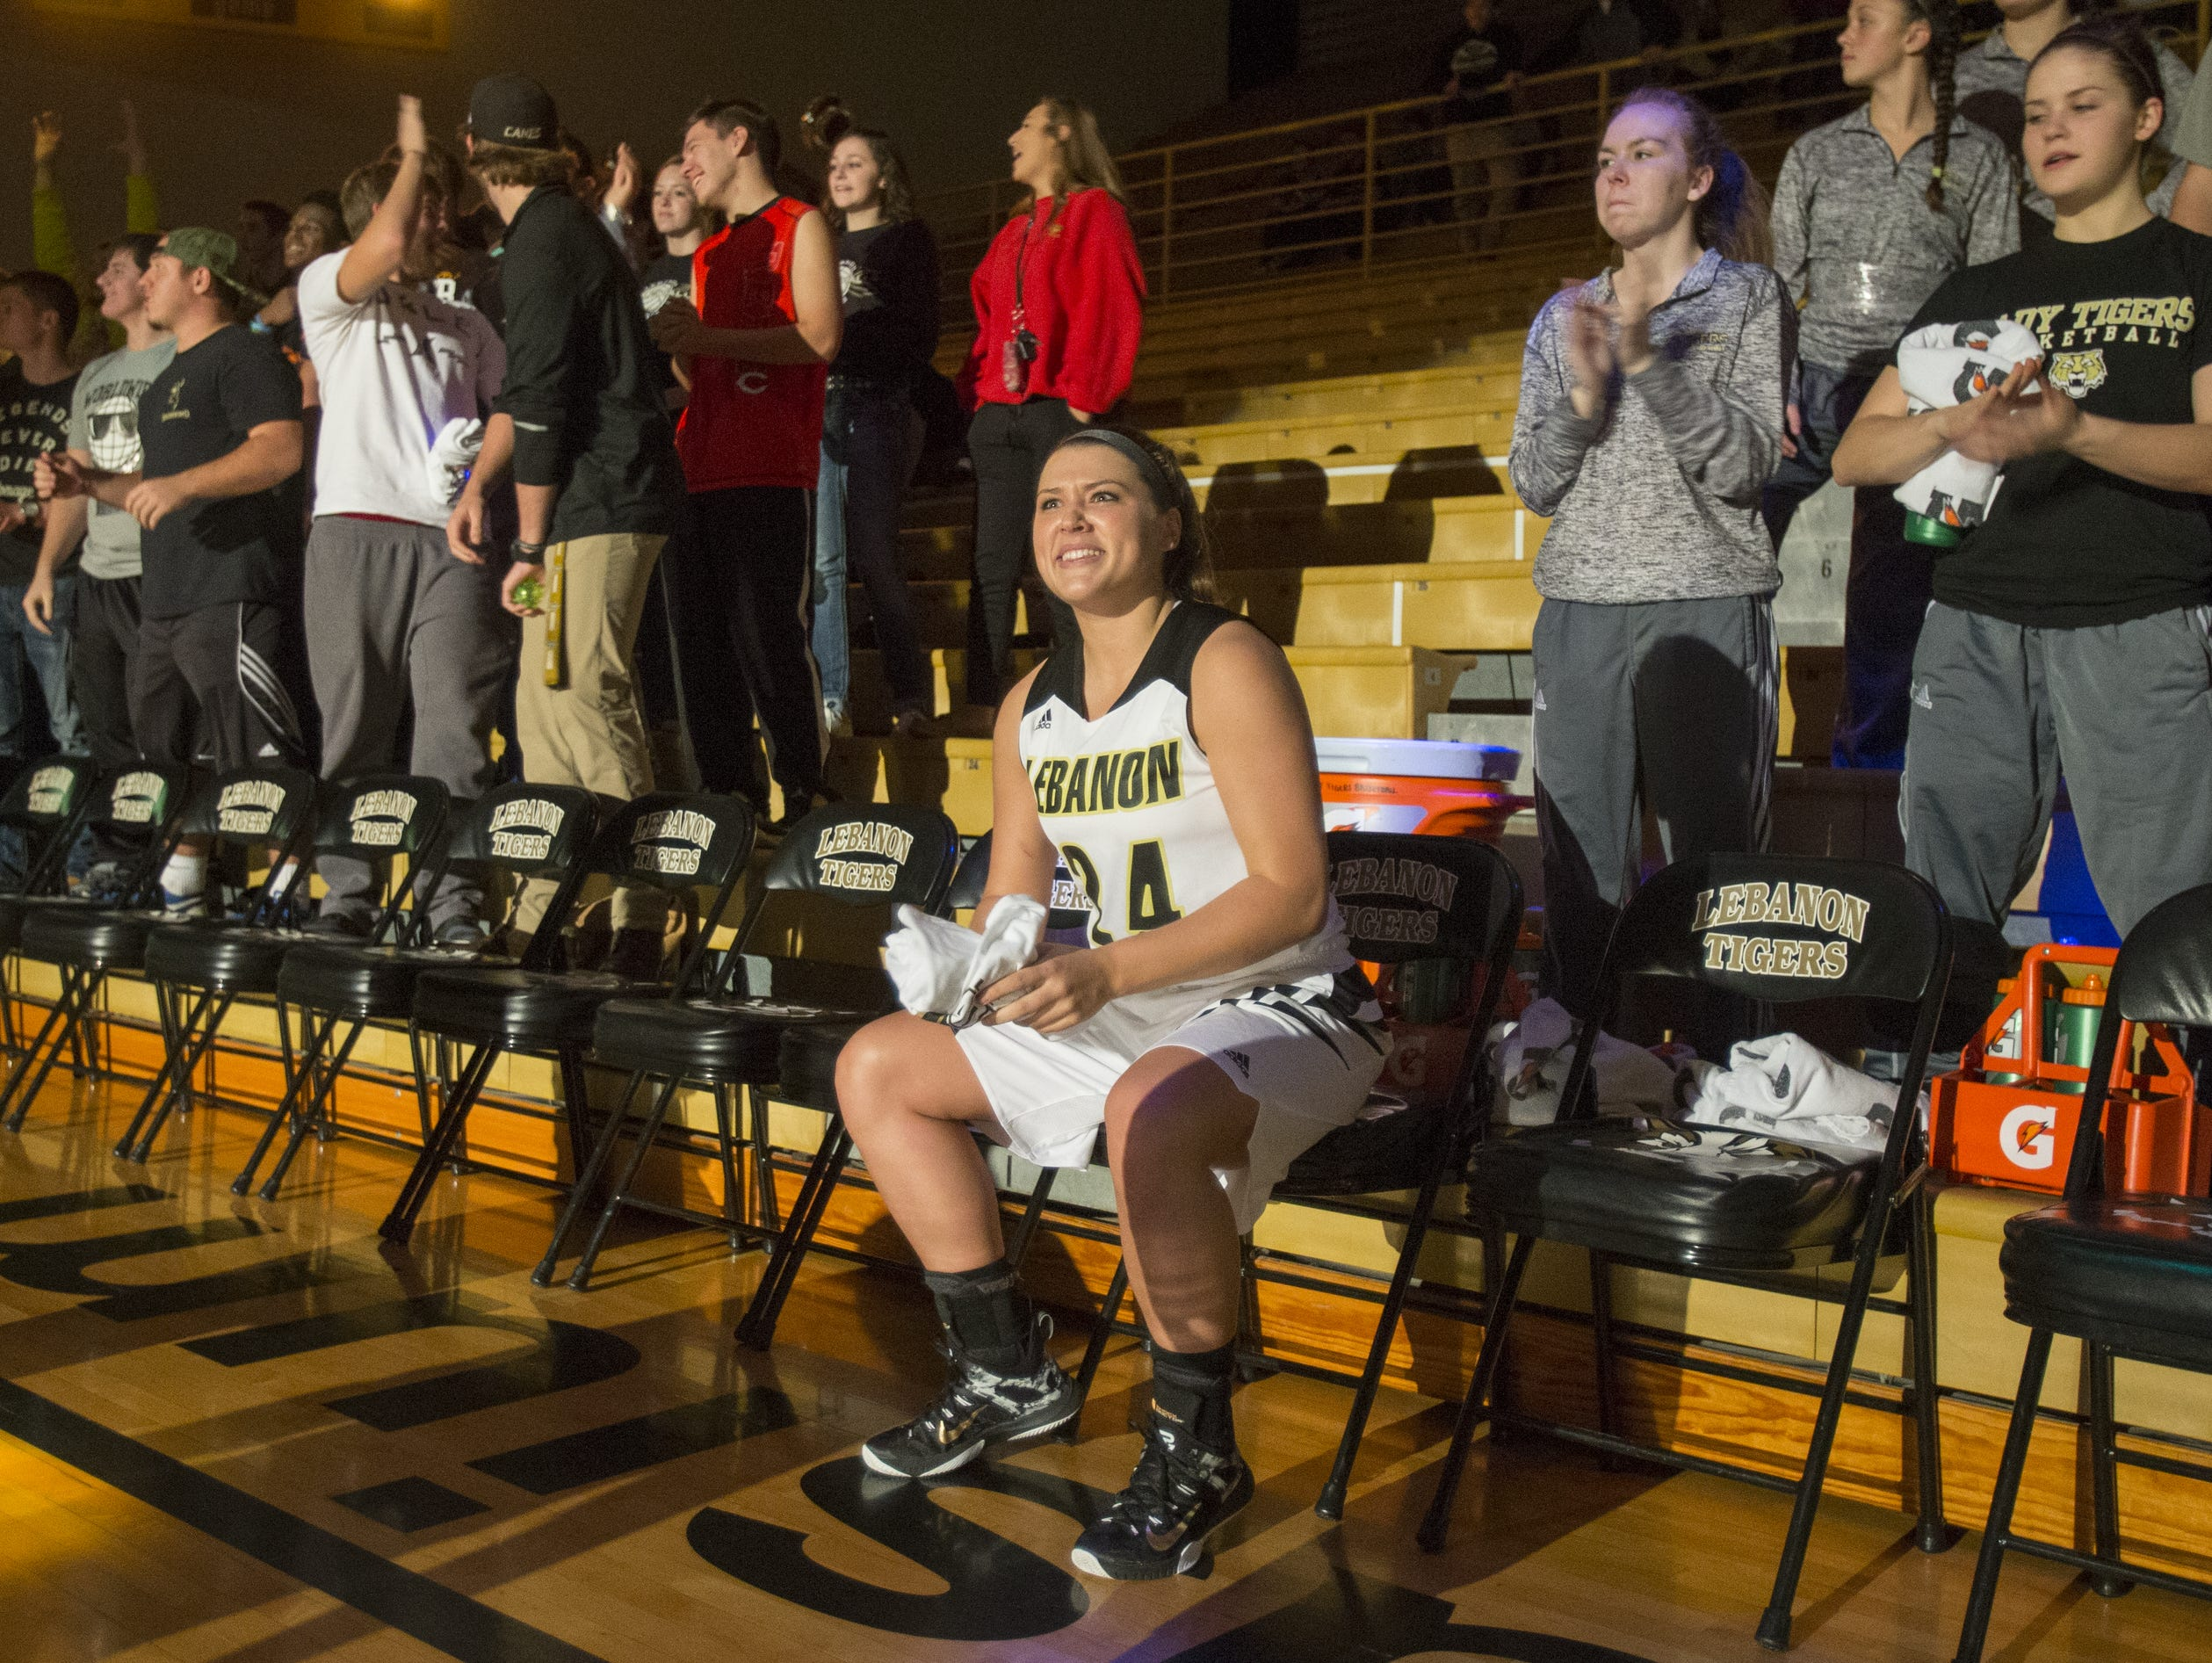 Kristen Spolyar smiles as she is announced during pre-game introductions for Lebanon High School, Lebanon, Monday, Nov. 30, 2015. Spolyar, who has scored more than 2,000 points in her high school career, finished with 45 this game.